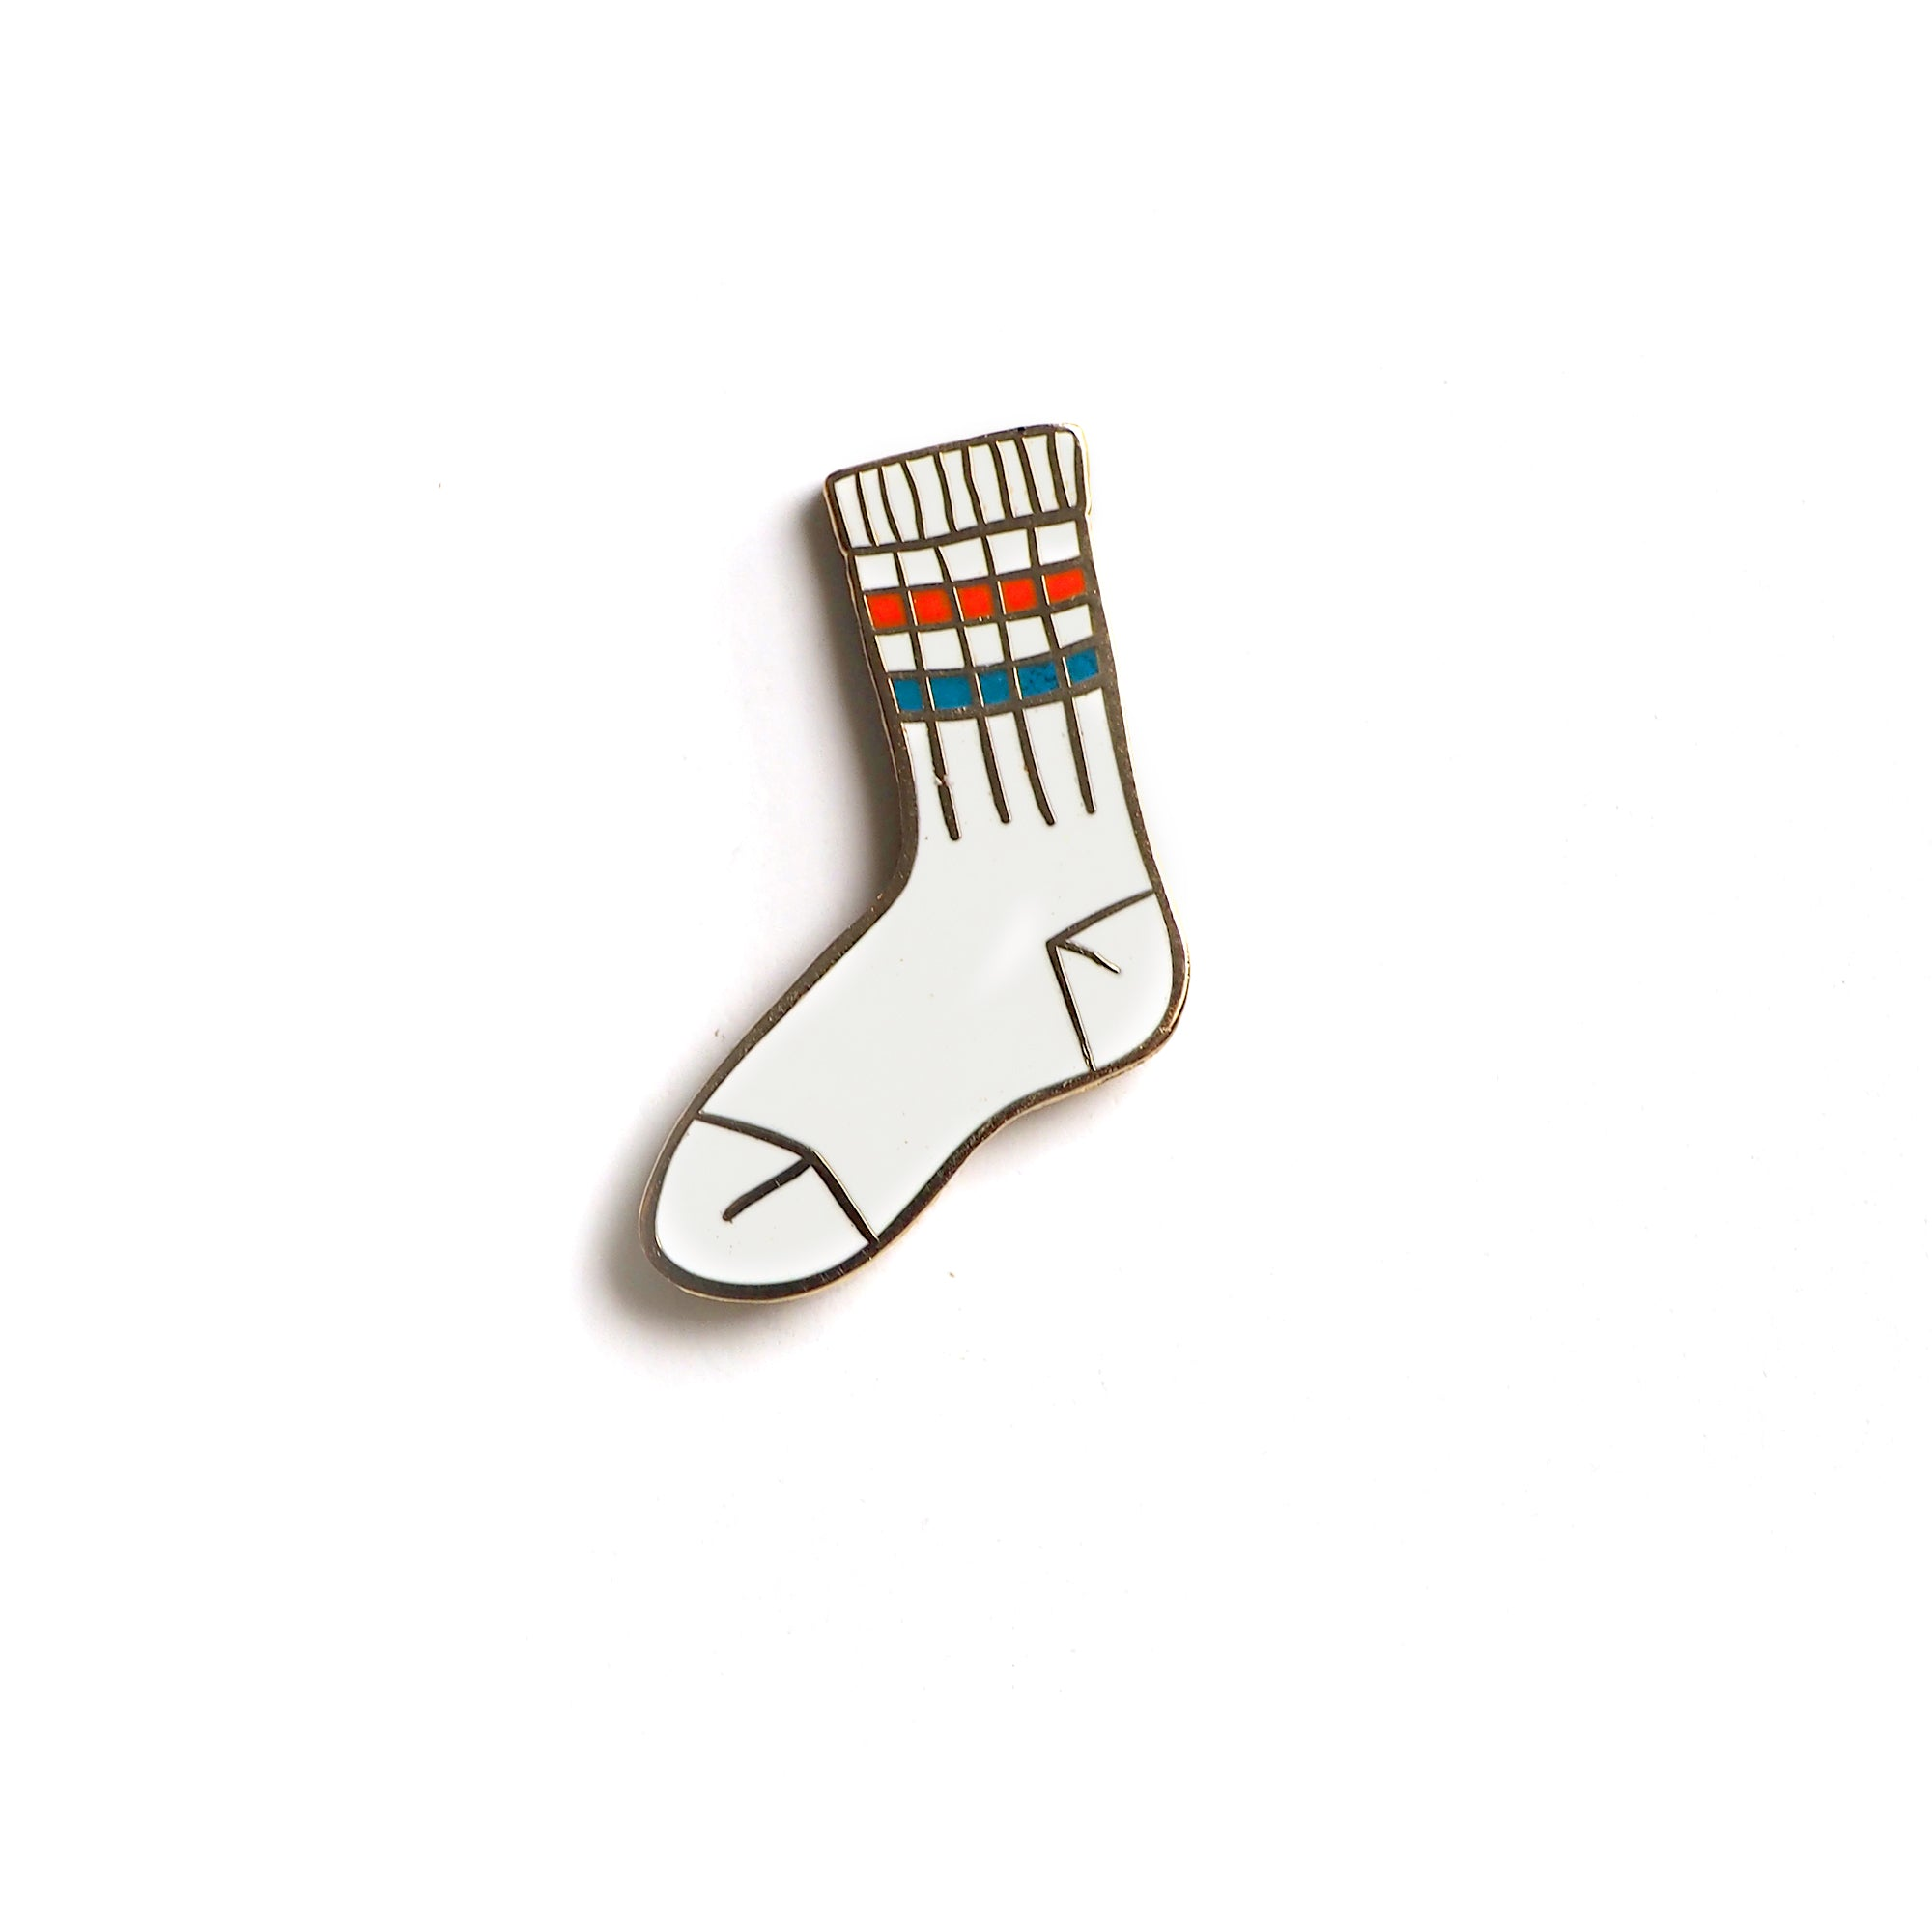 Zokni pin / Sock pin